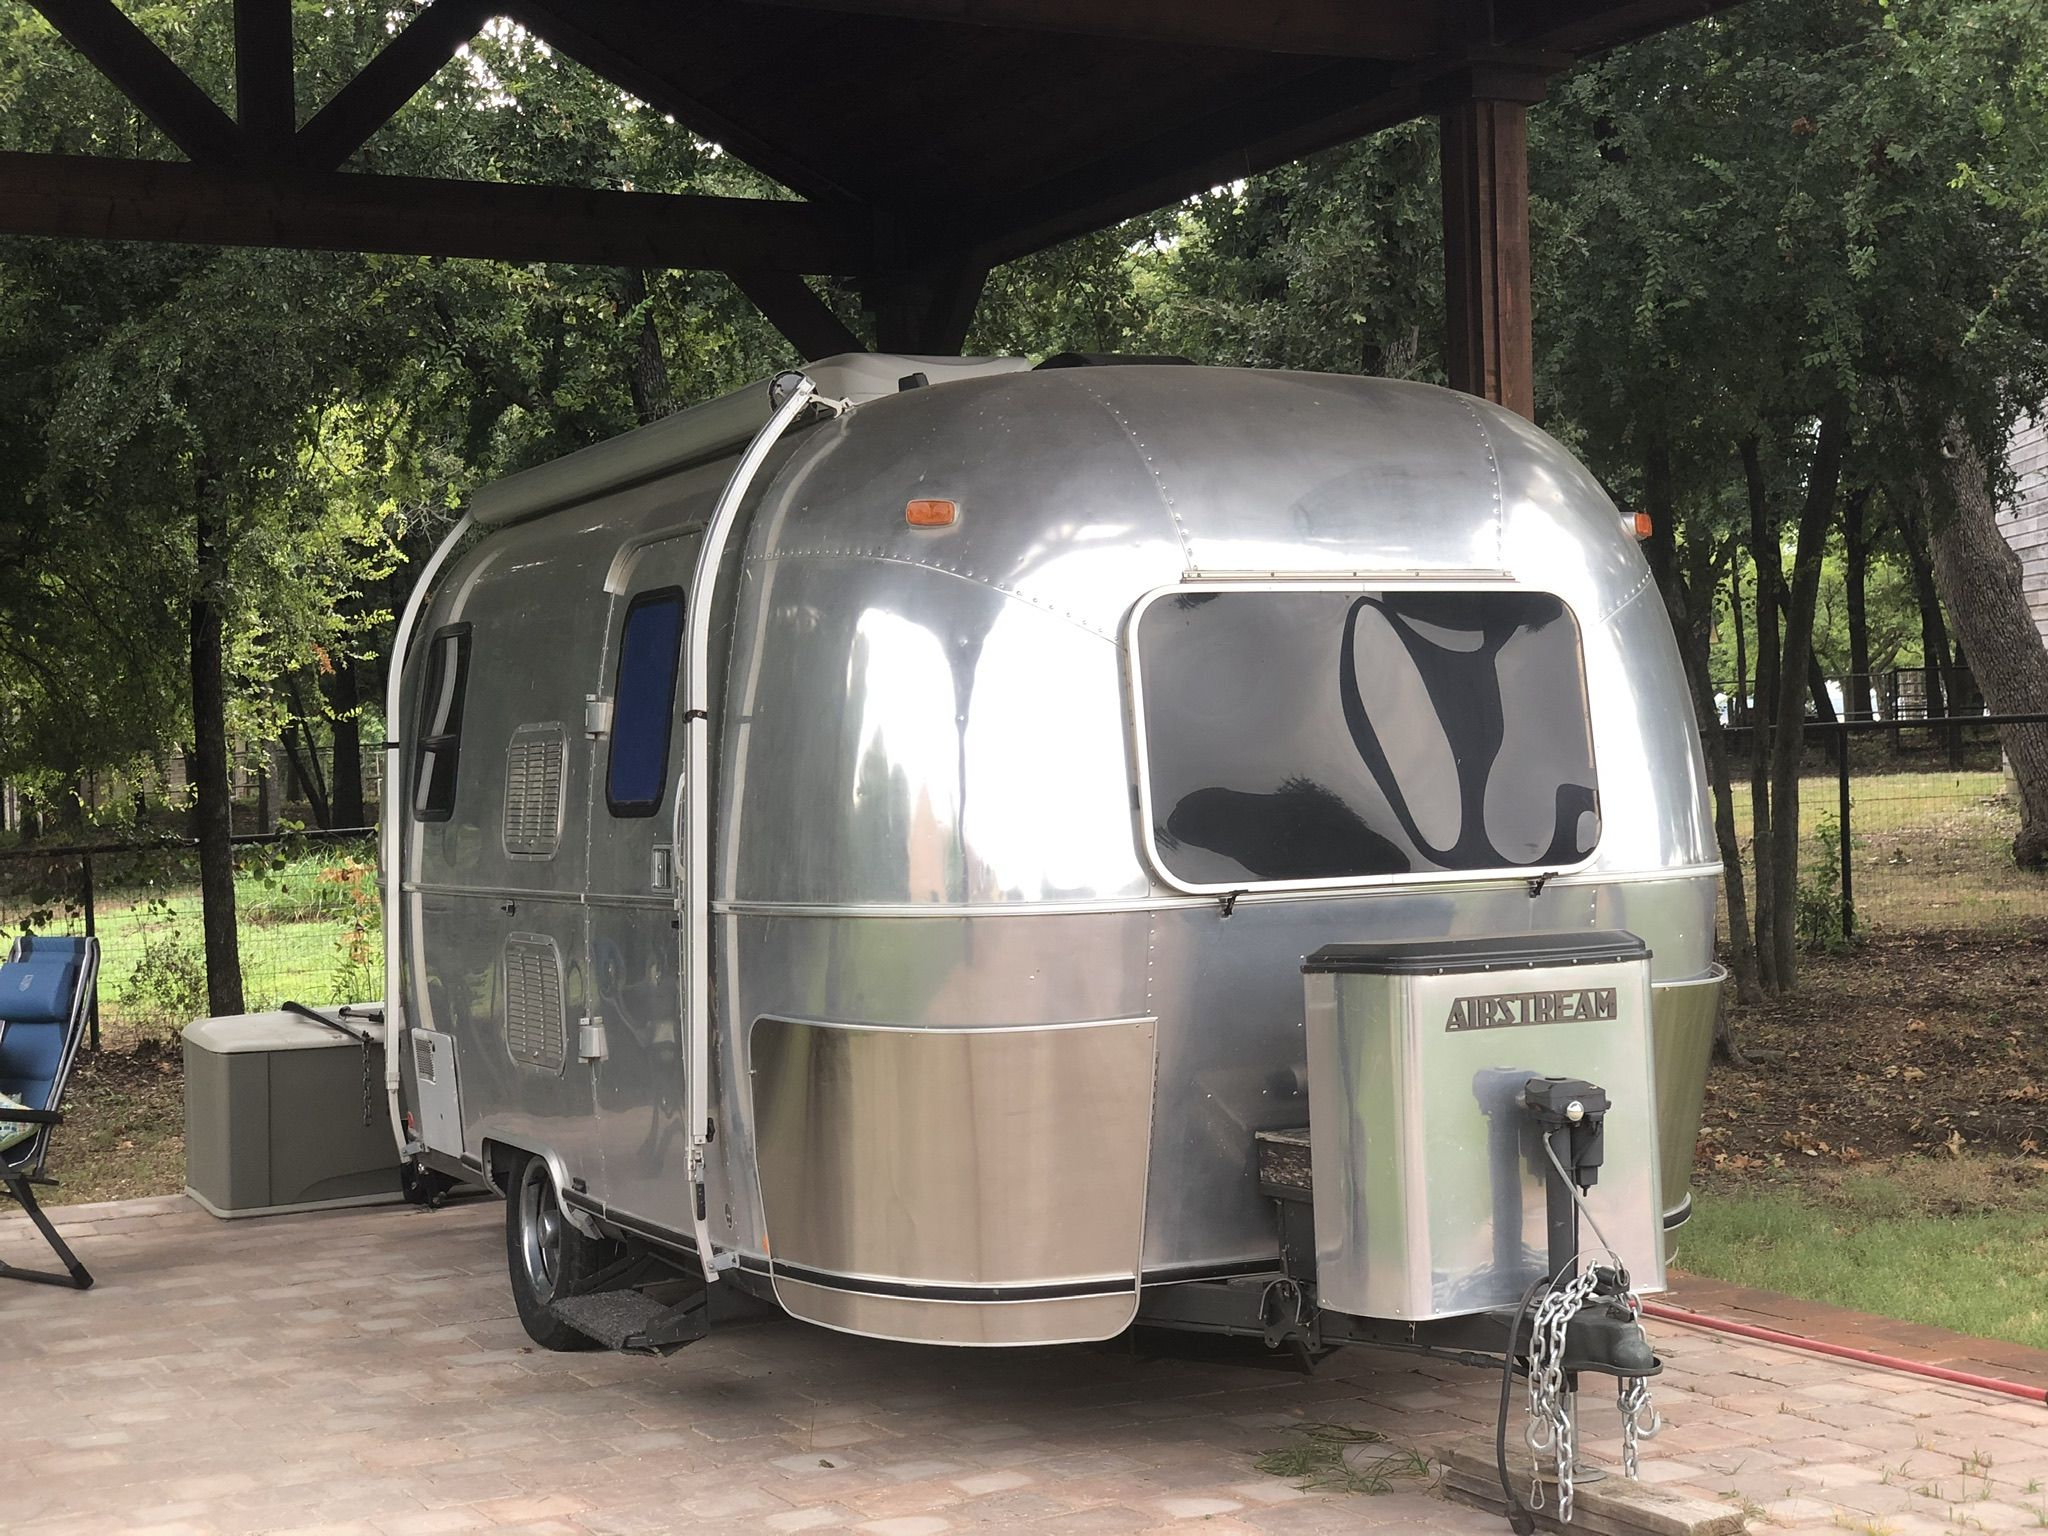 1998 Airstream 19ft Bambi For Sale In Denton Jesse The Bambi Is Ready For Her Next Adventure In 2020 Airstream Trailers For Sale Airstream For Sale Airstream Bambi